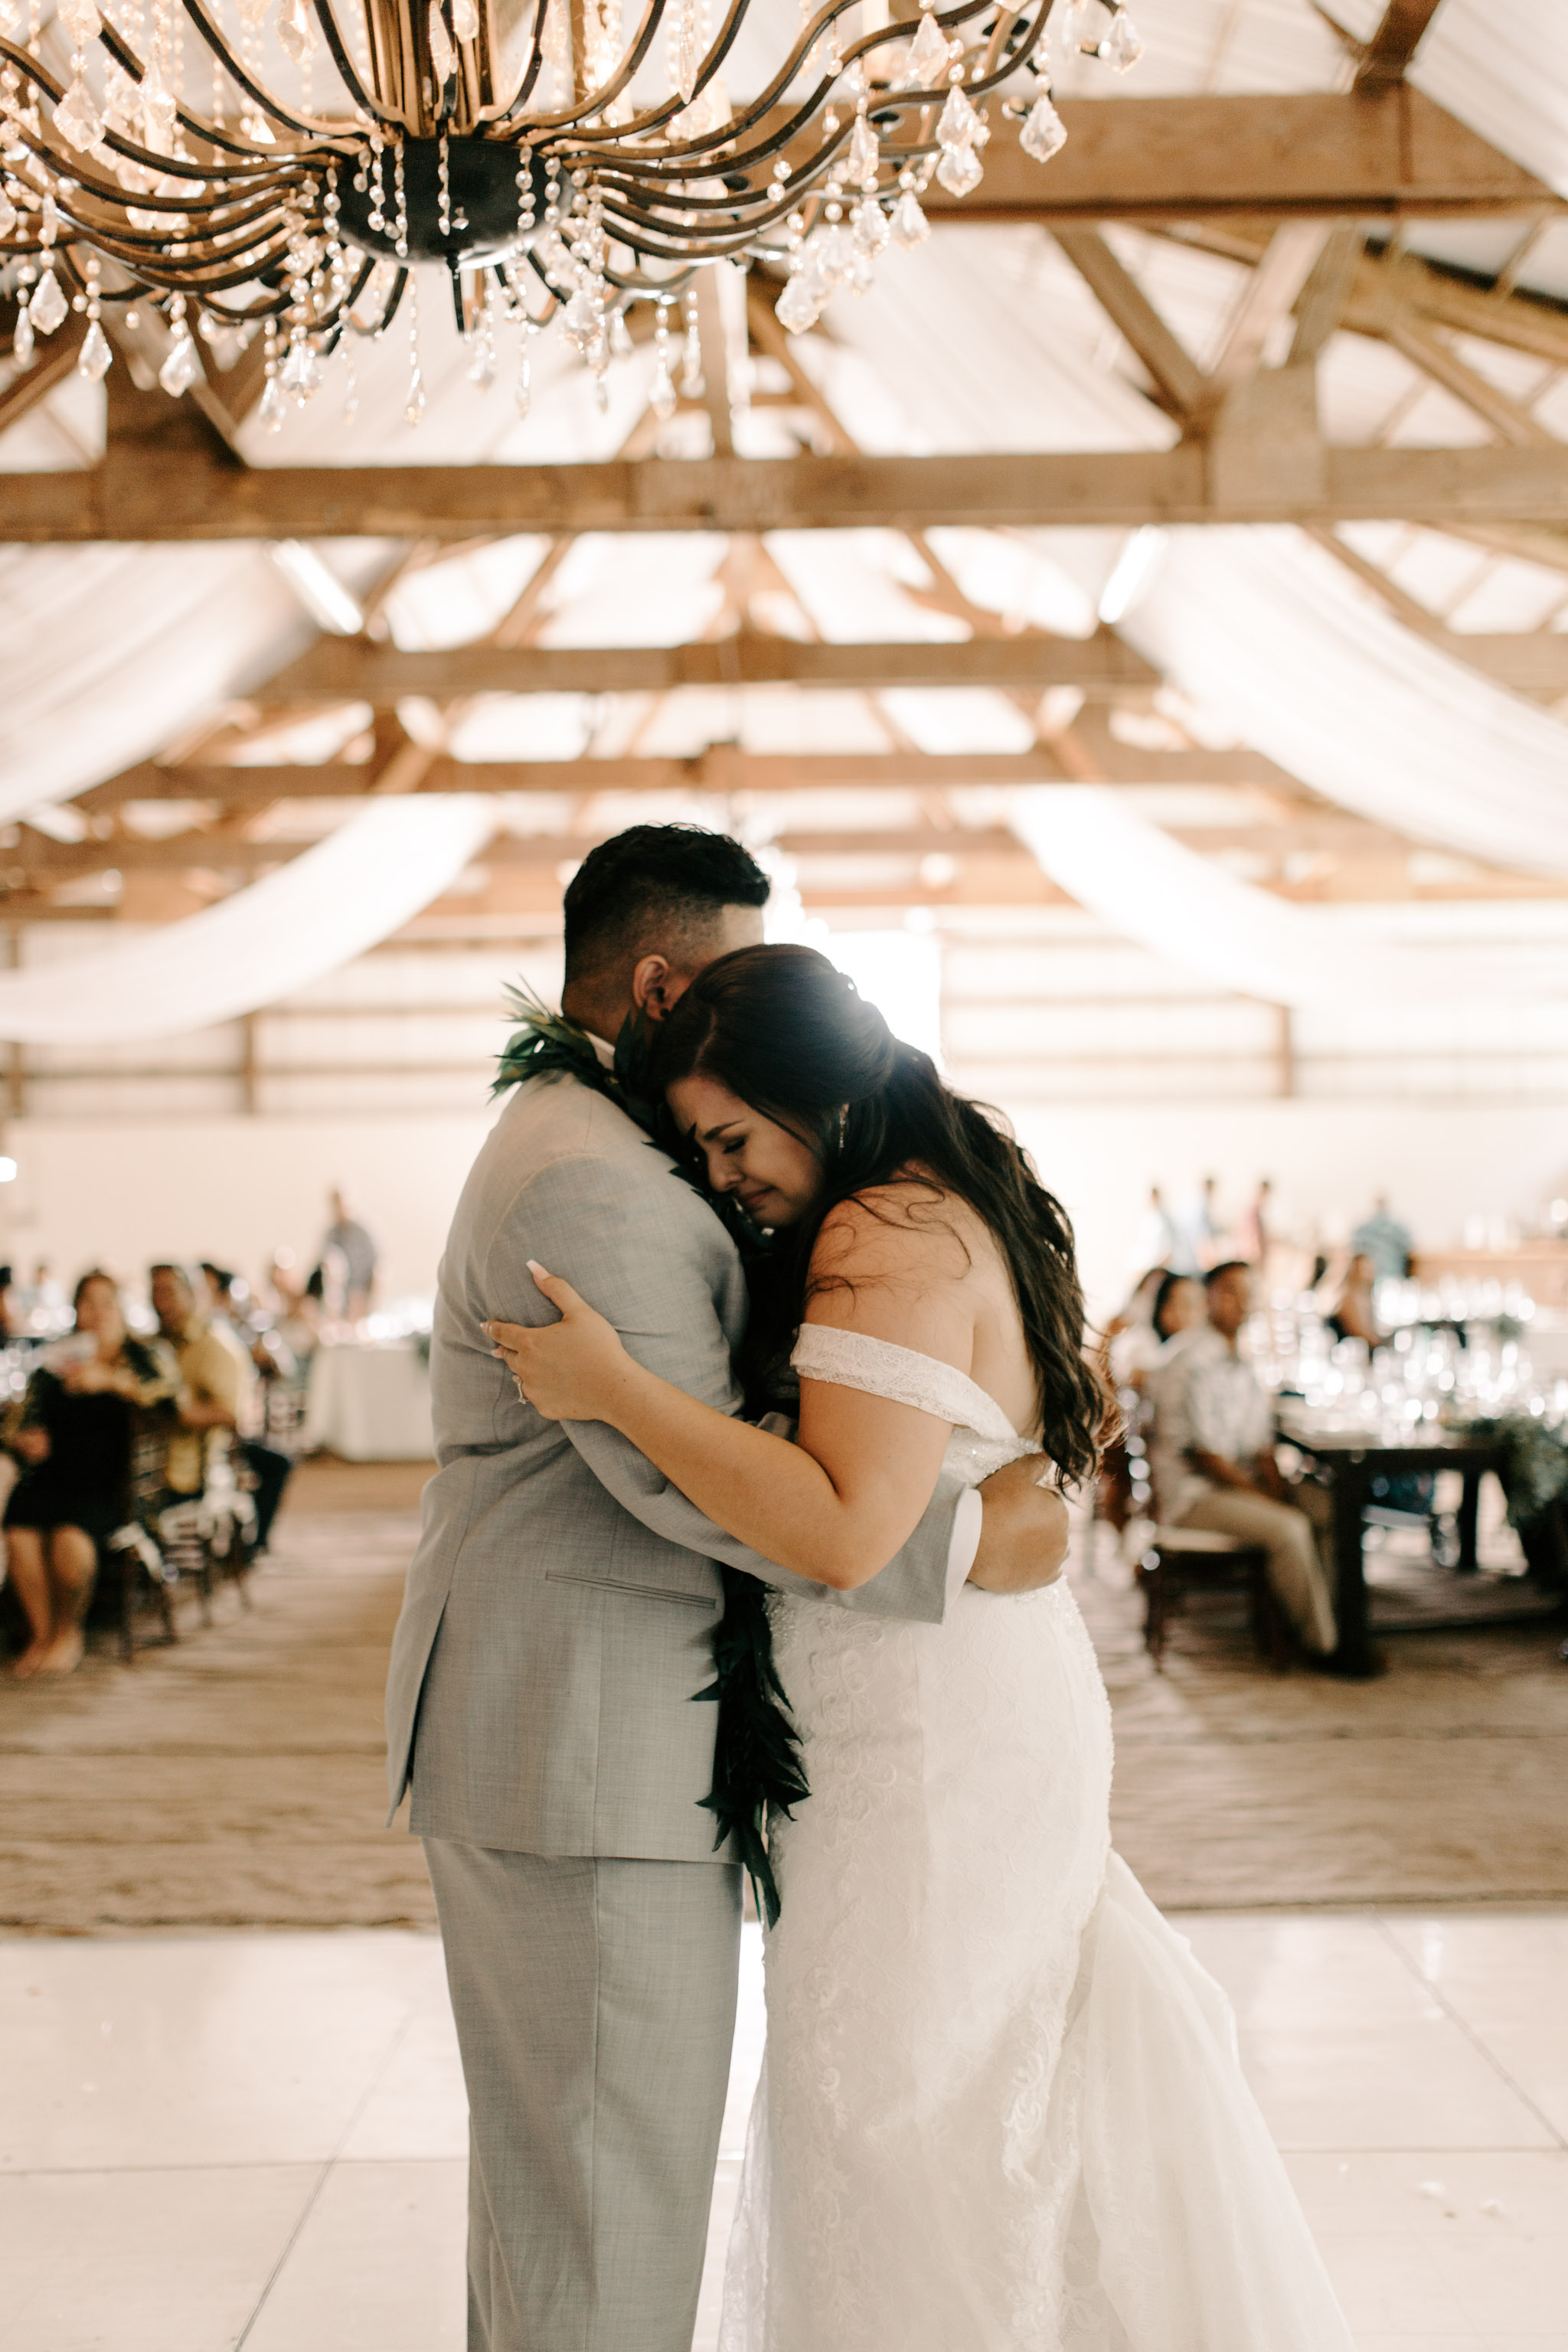 Bride Crying During the First Dance - Hawaii Barn Wedding Reception - Sunset Ranch Hawaii Wedding By Oahu Wedding Photographer Desiree Leilani